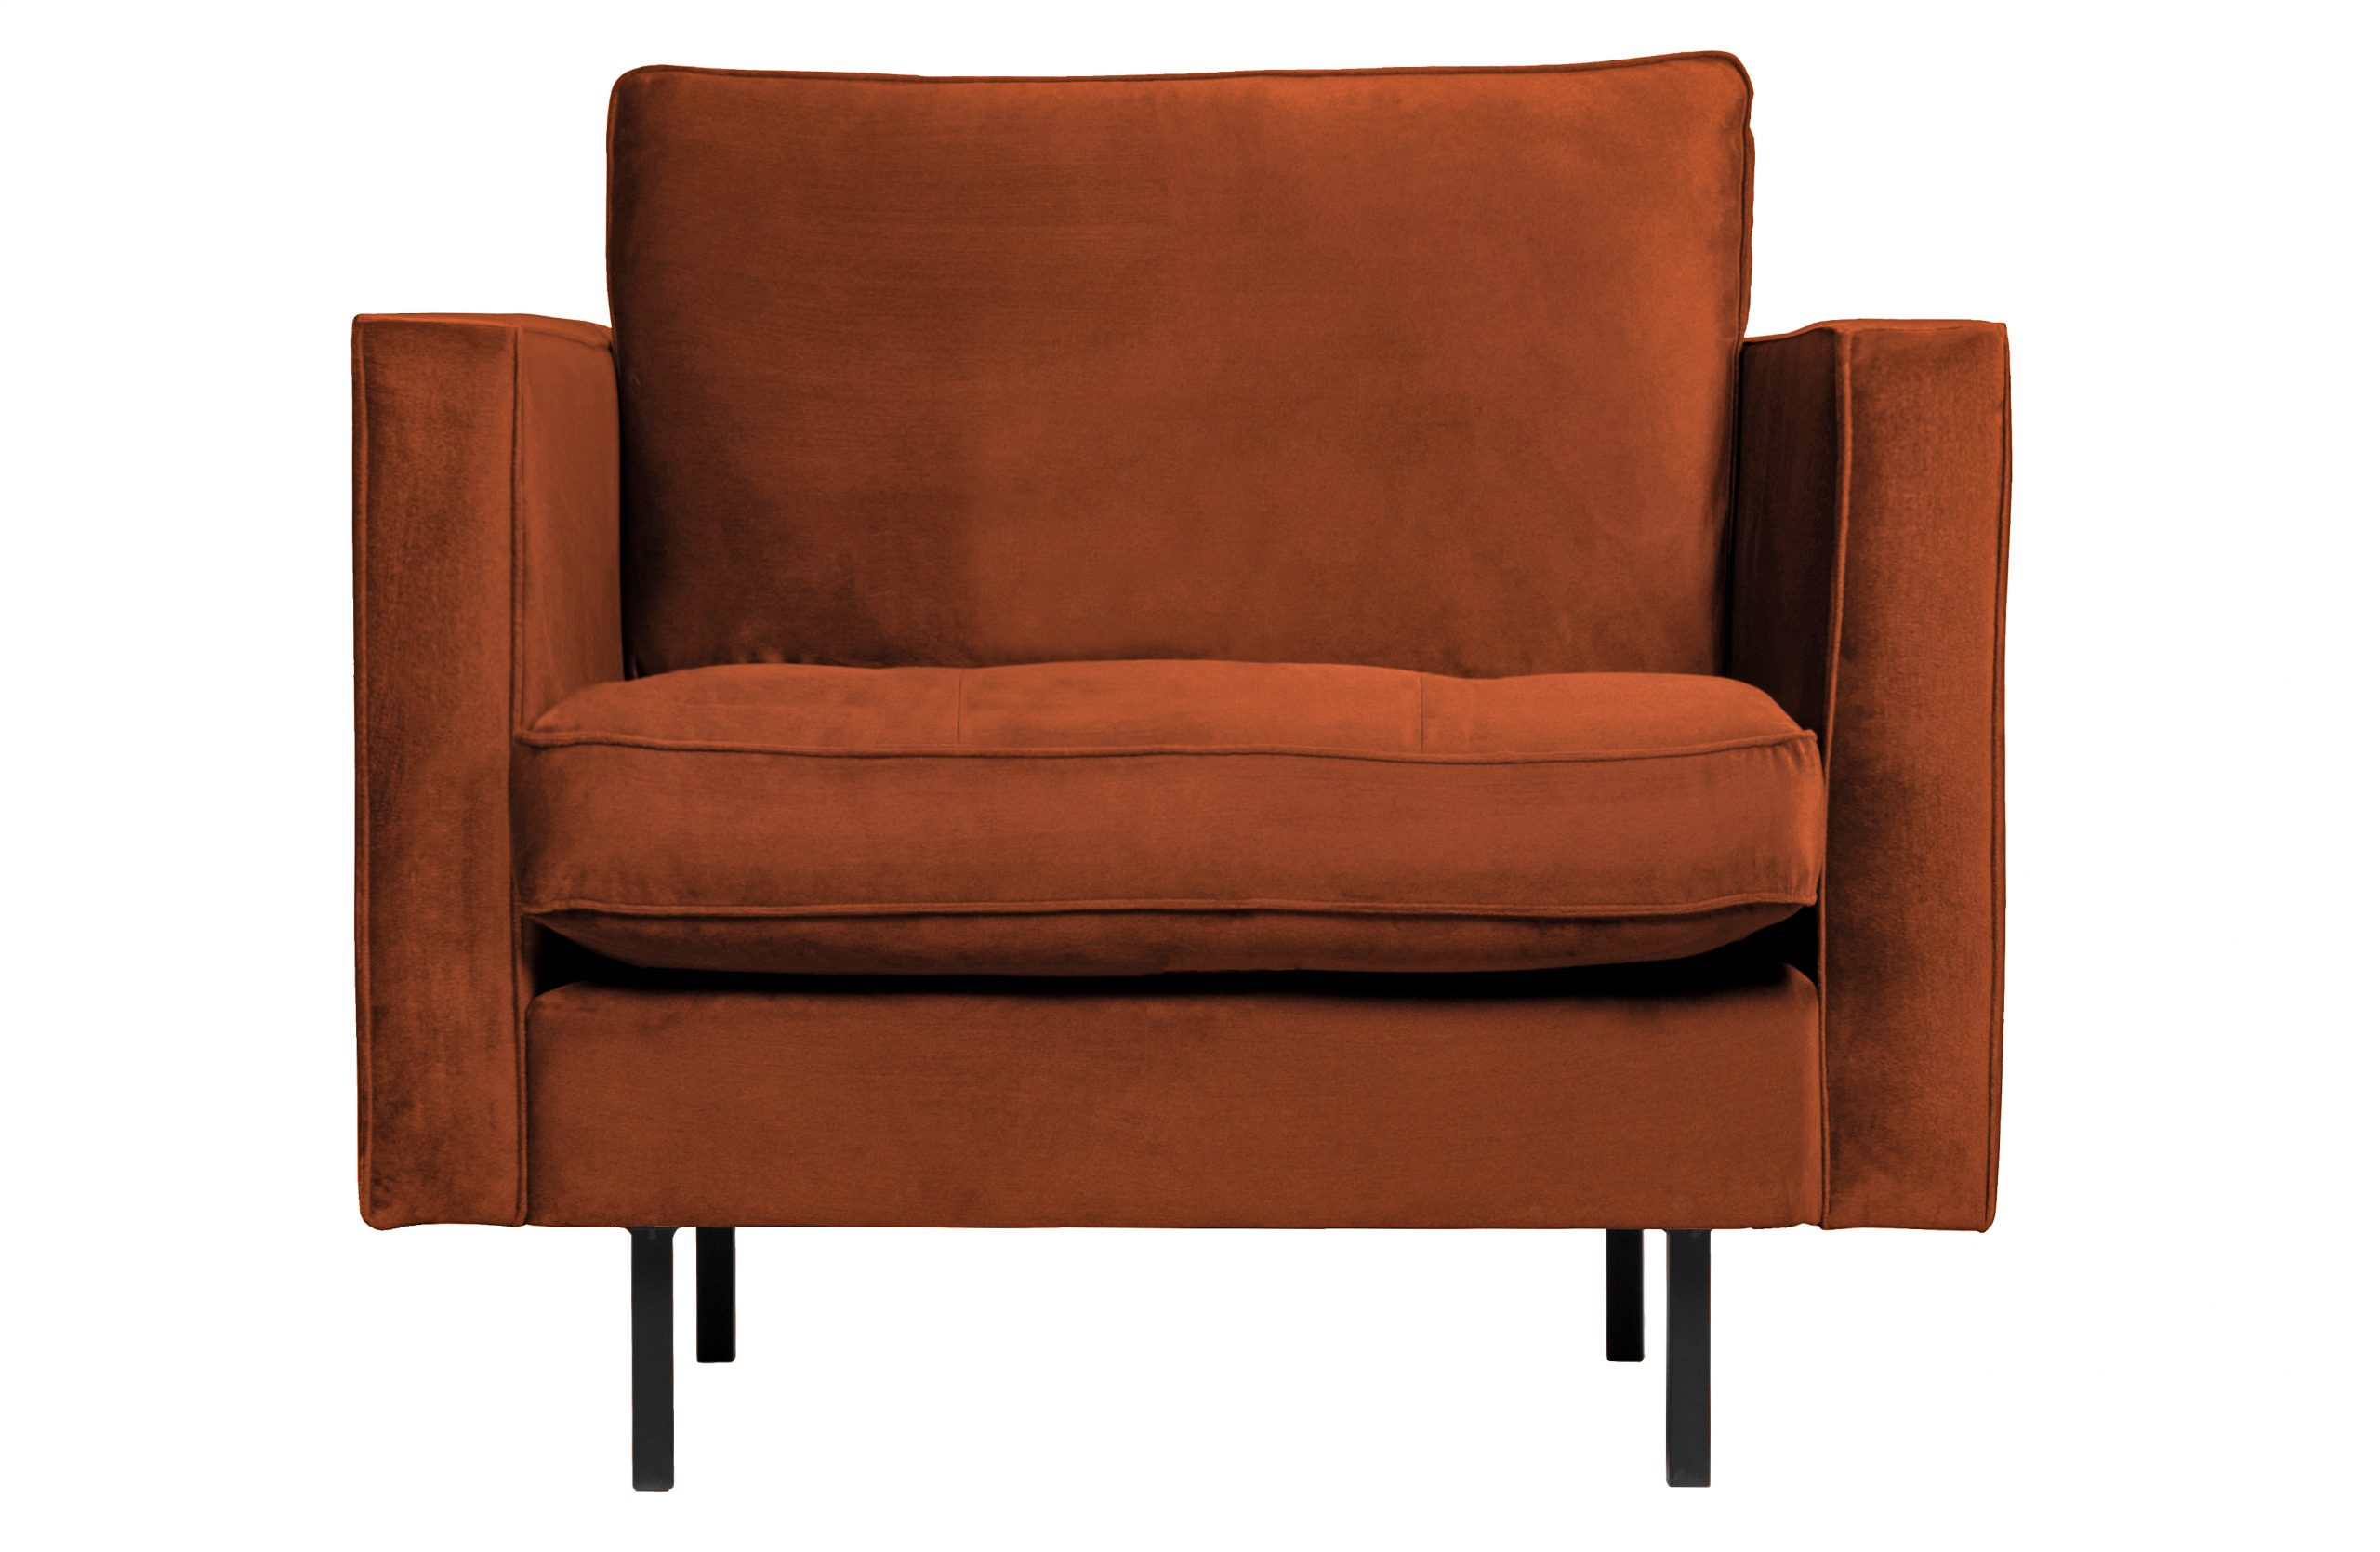 Rodeo Classic Fauteuil Velvet - Roest